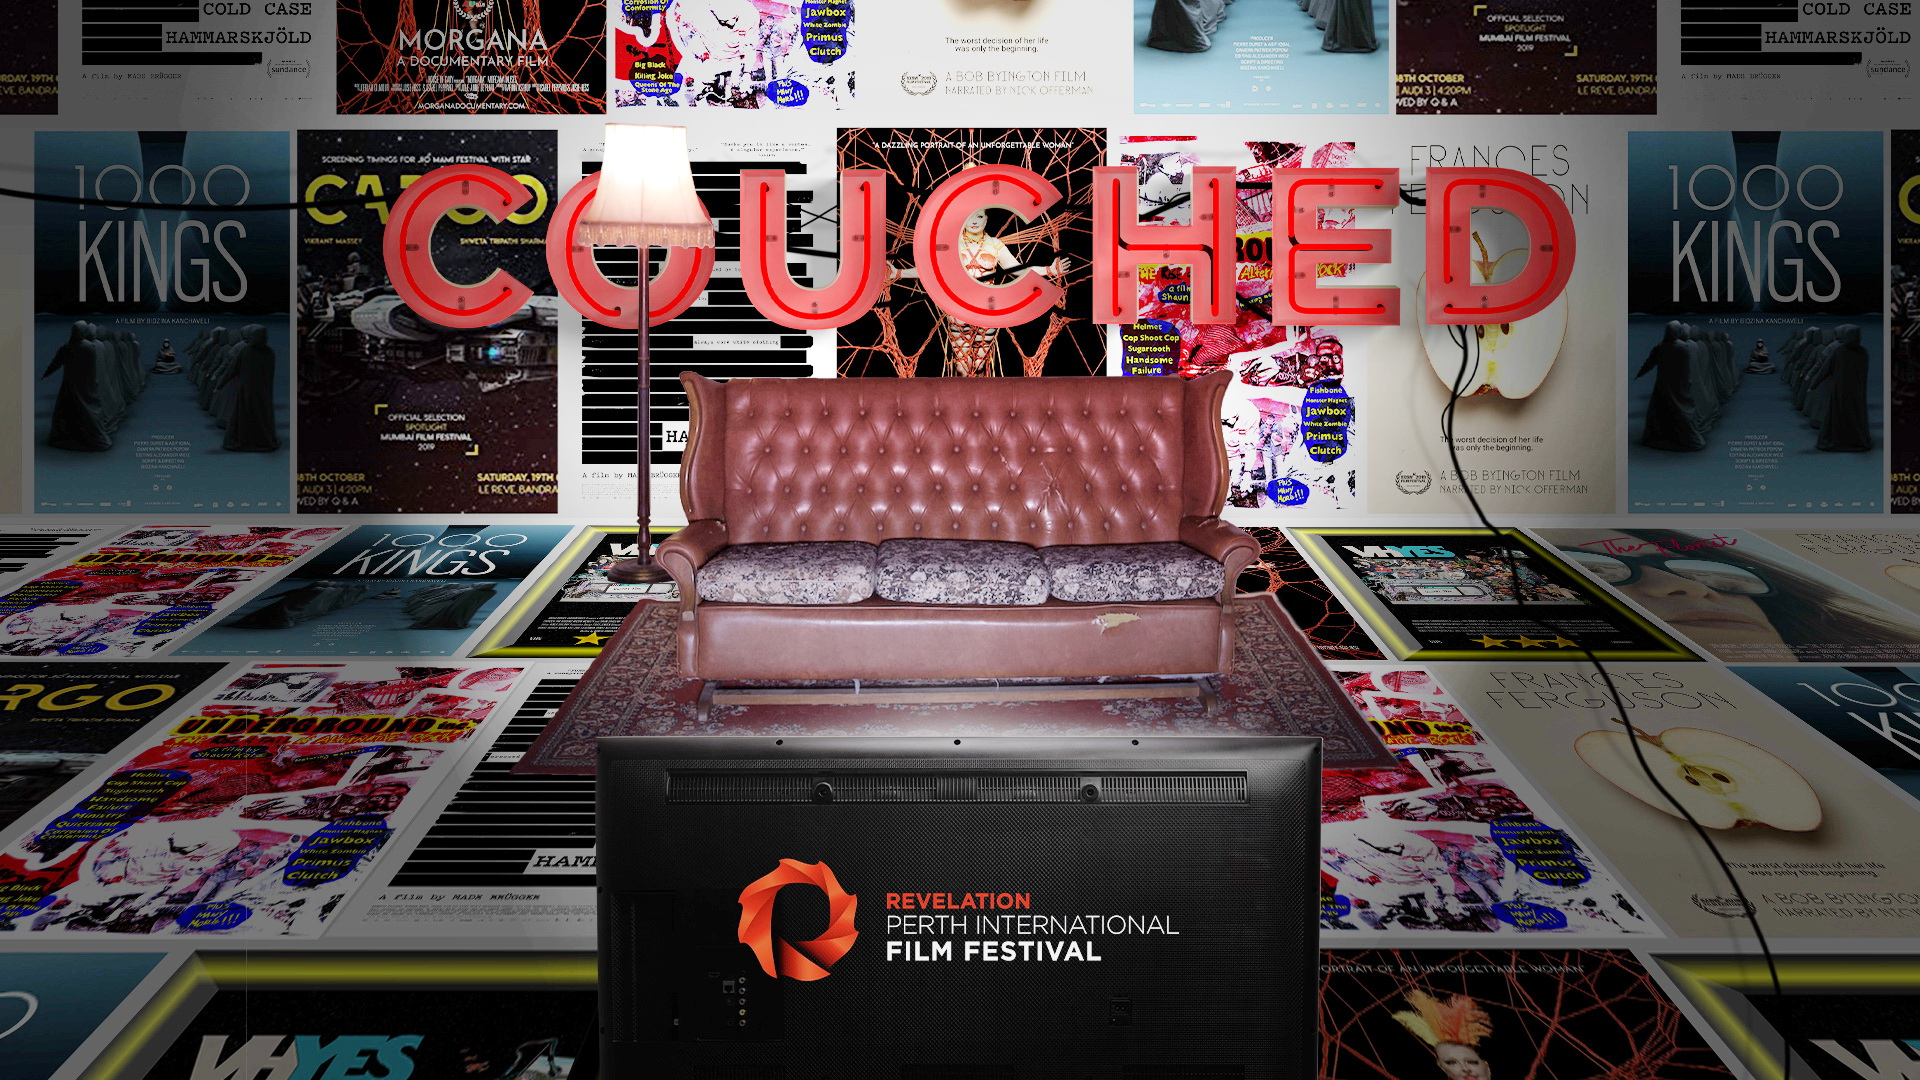 Revelation Perth International Film Fest: Couched